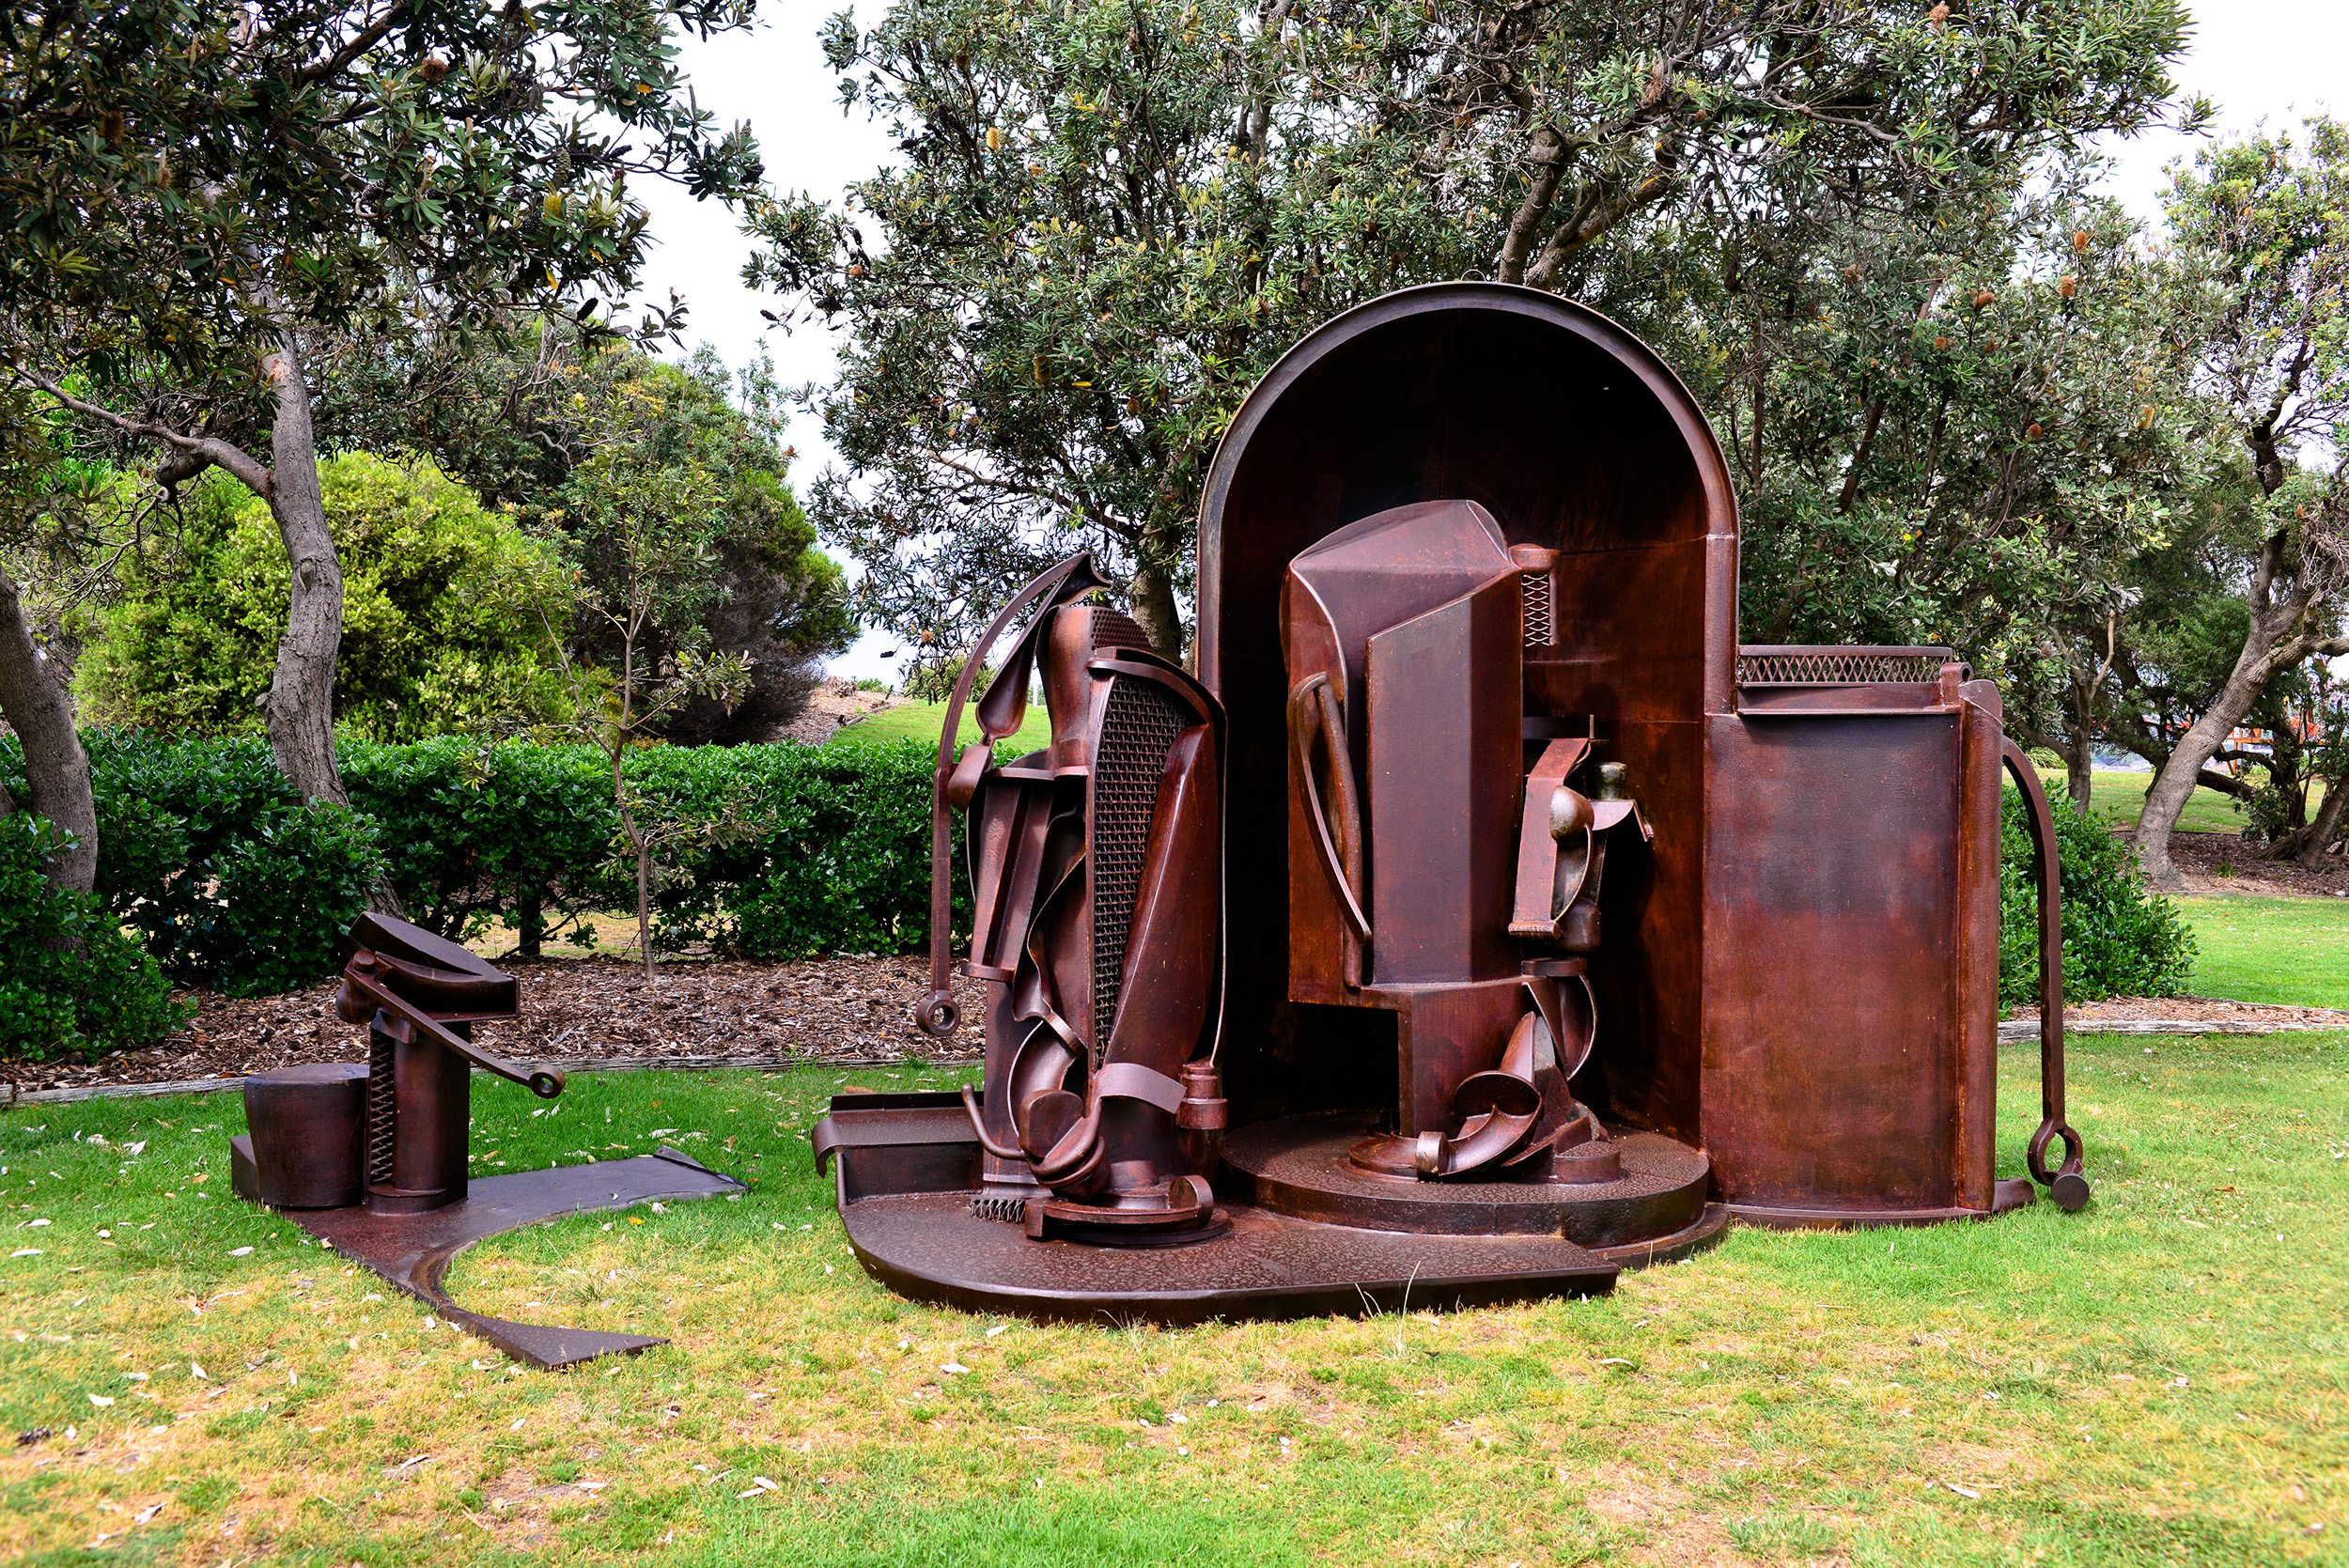 David Horton, in pace (in peace) after Verrocchio's Doubting Thomas, Sculpture by the Sea, Bondi 2015. Photo Clyde Yee